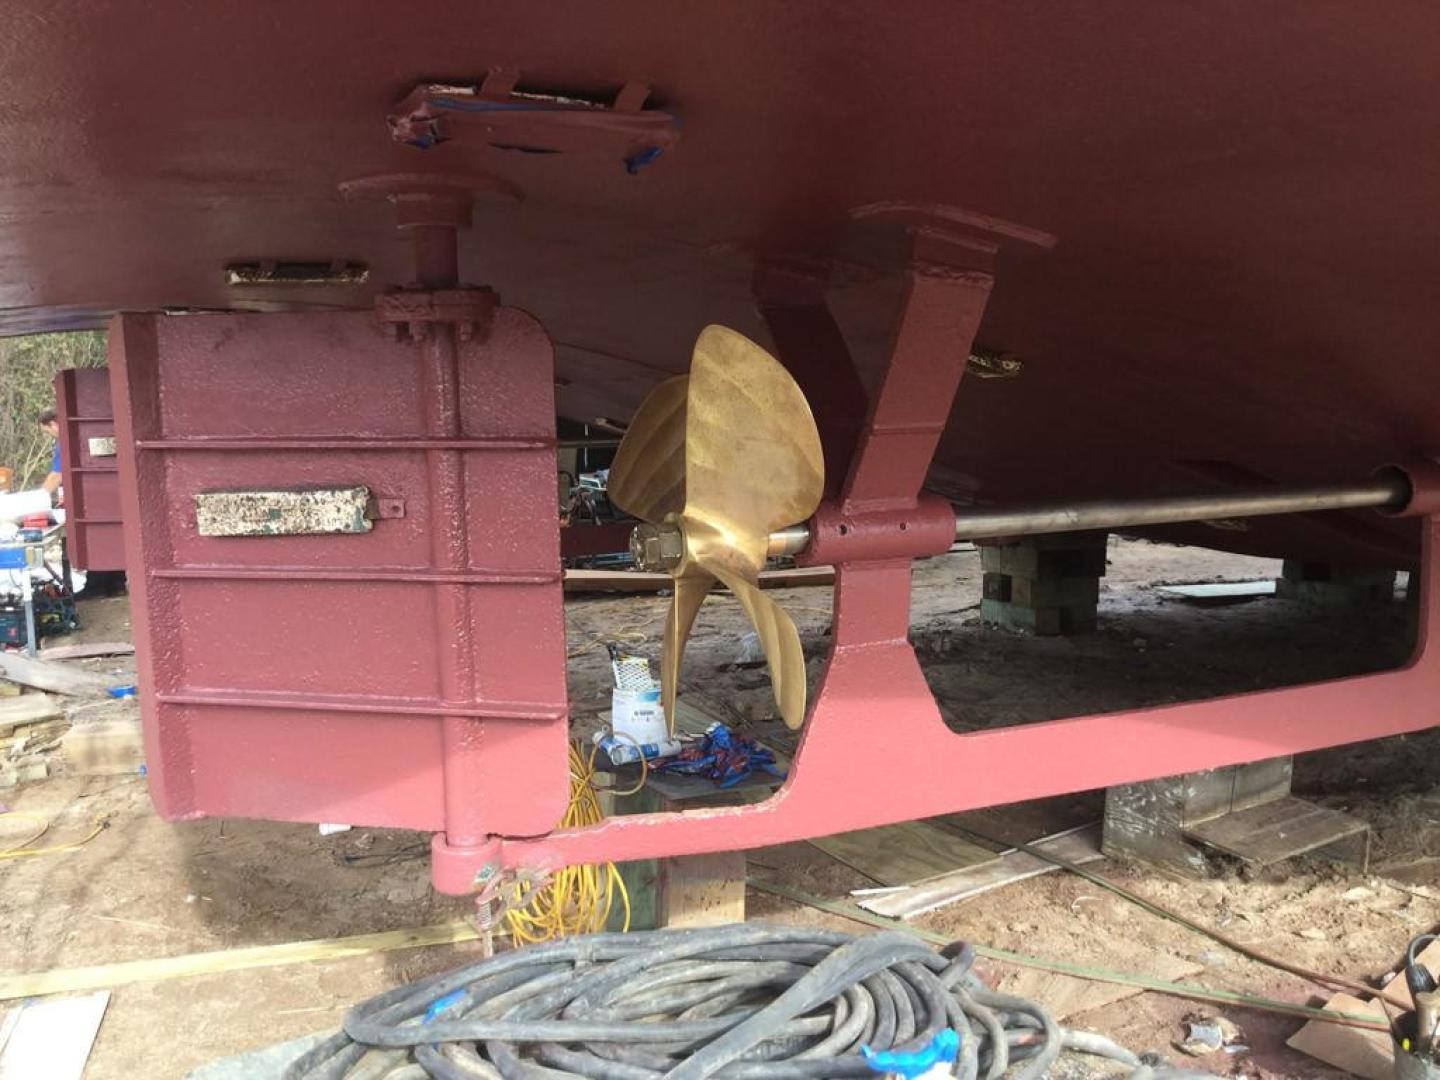 Props and Rudder